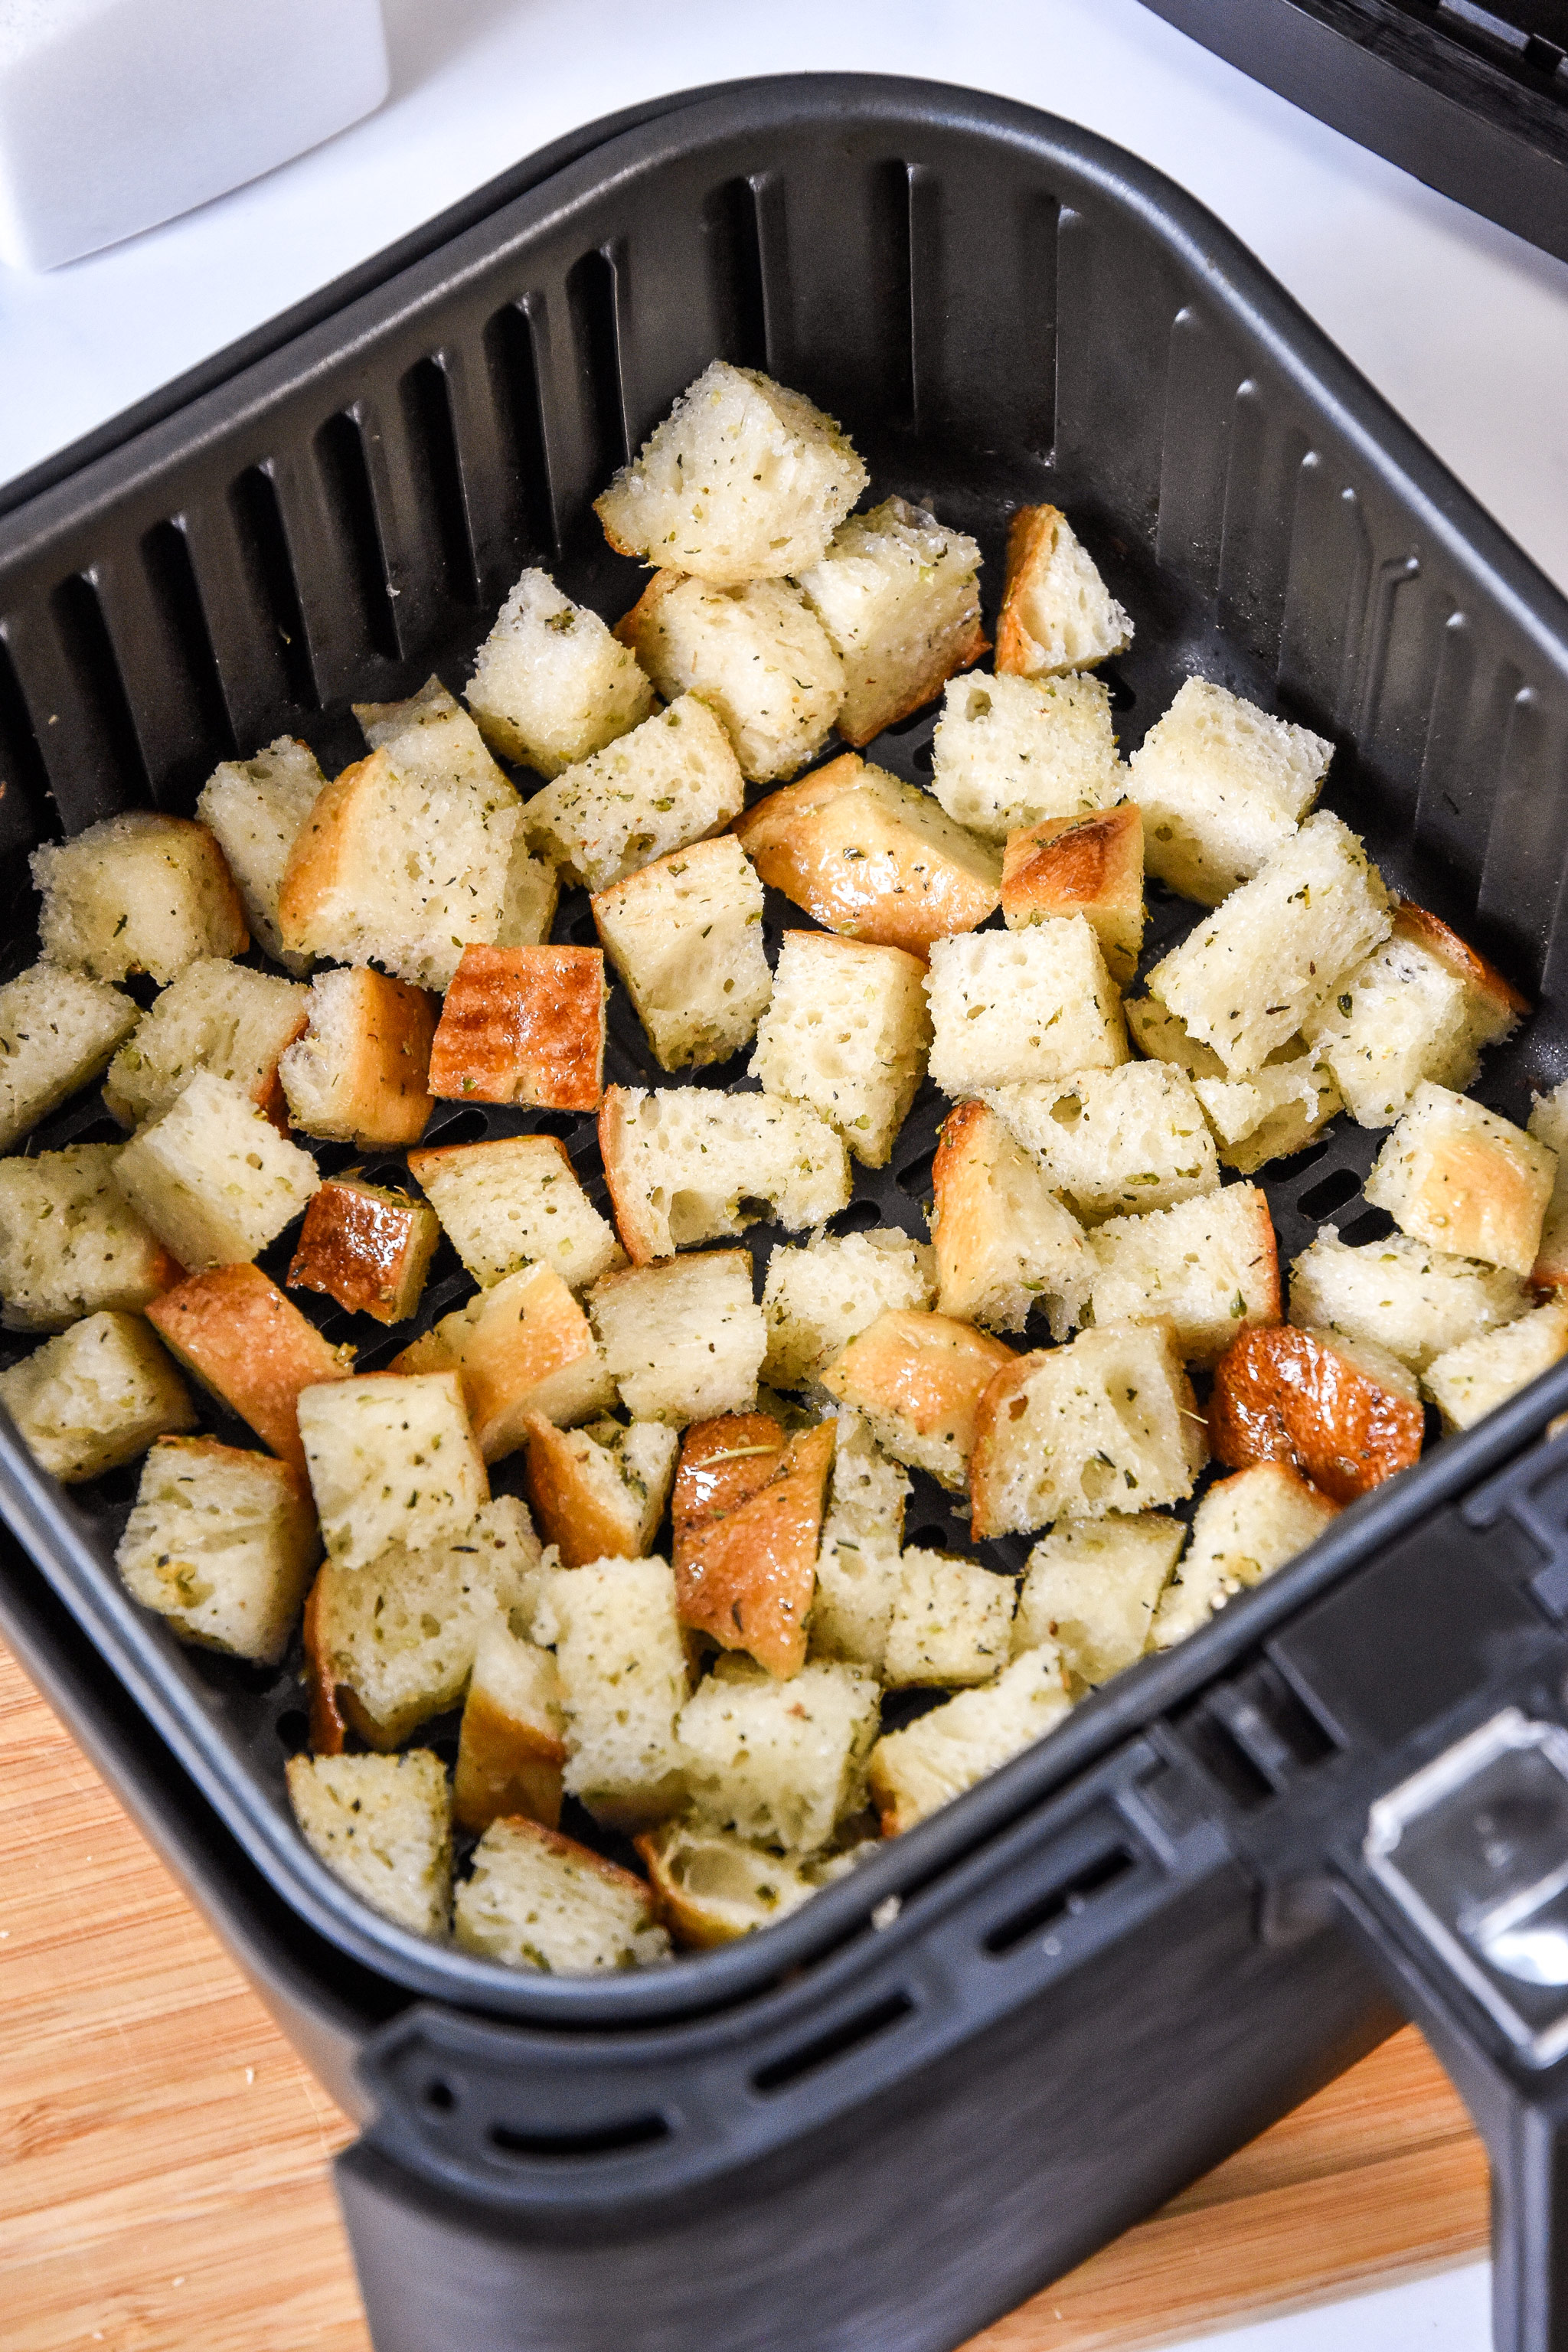 bread cubes in an air fryer basket before cooking.